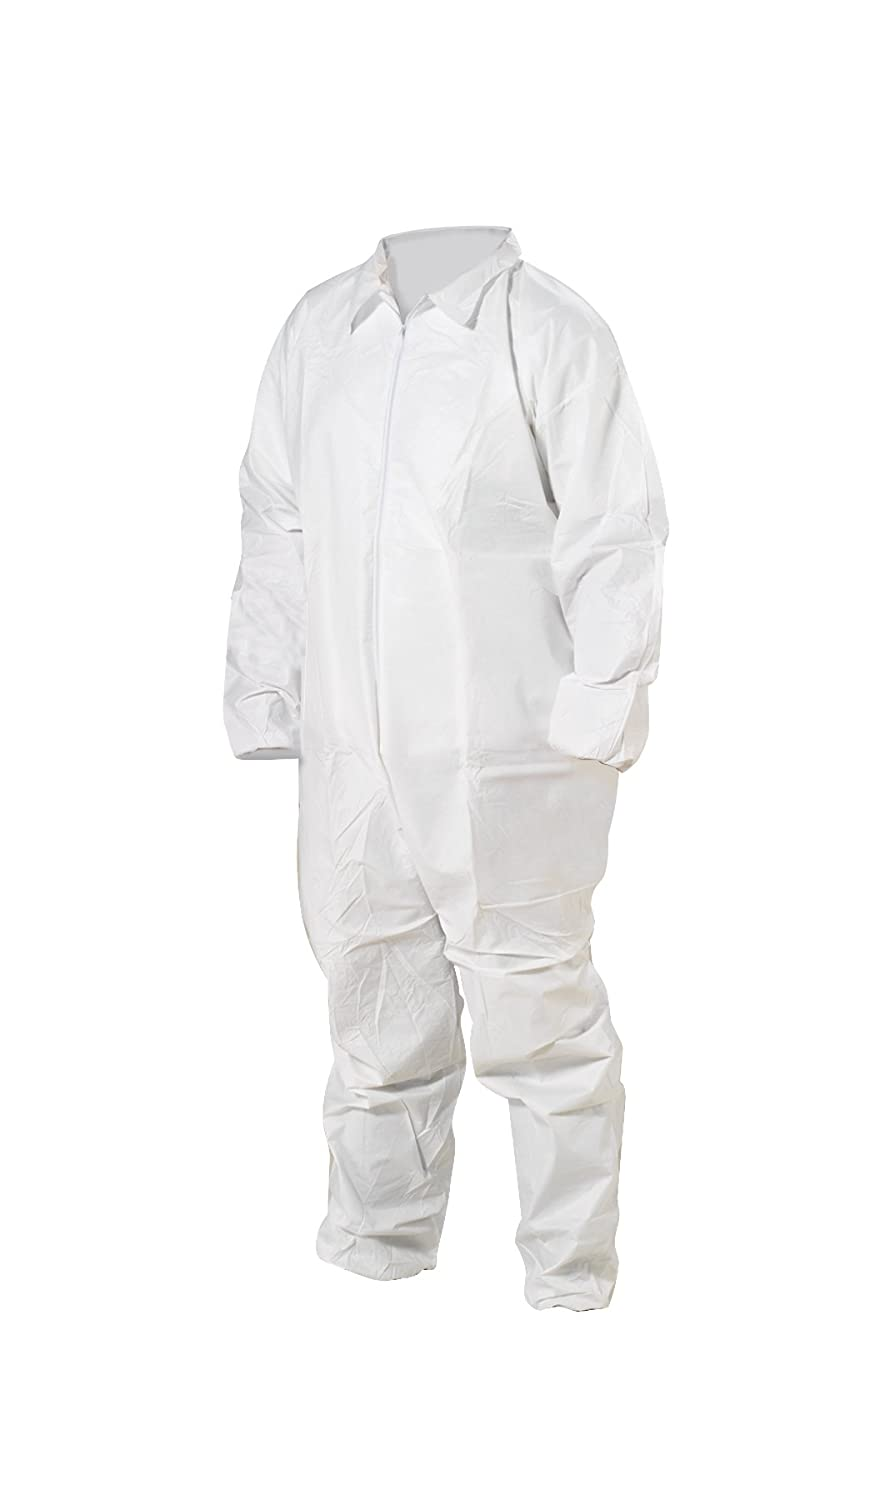 Case of 25 4X-Large High Five AC157 Microporous WBP Coverall with Zip Front Elastic Wrists and Ankles White